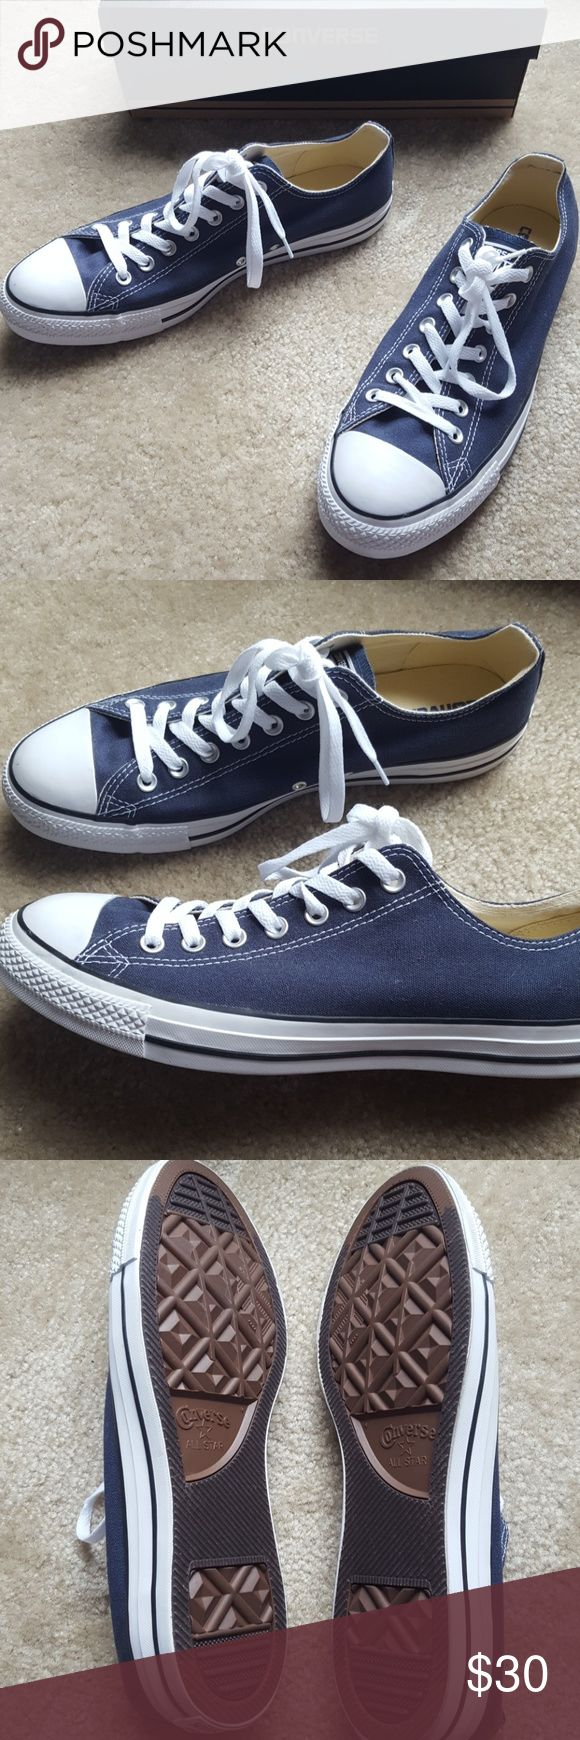 NWT Unisex Navy Converse Chuck Taylor Men sized 10.5, women sized 12.5. Comes with original packaging. Converse Shoes Sneakers